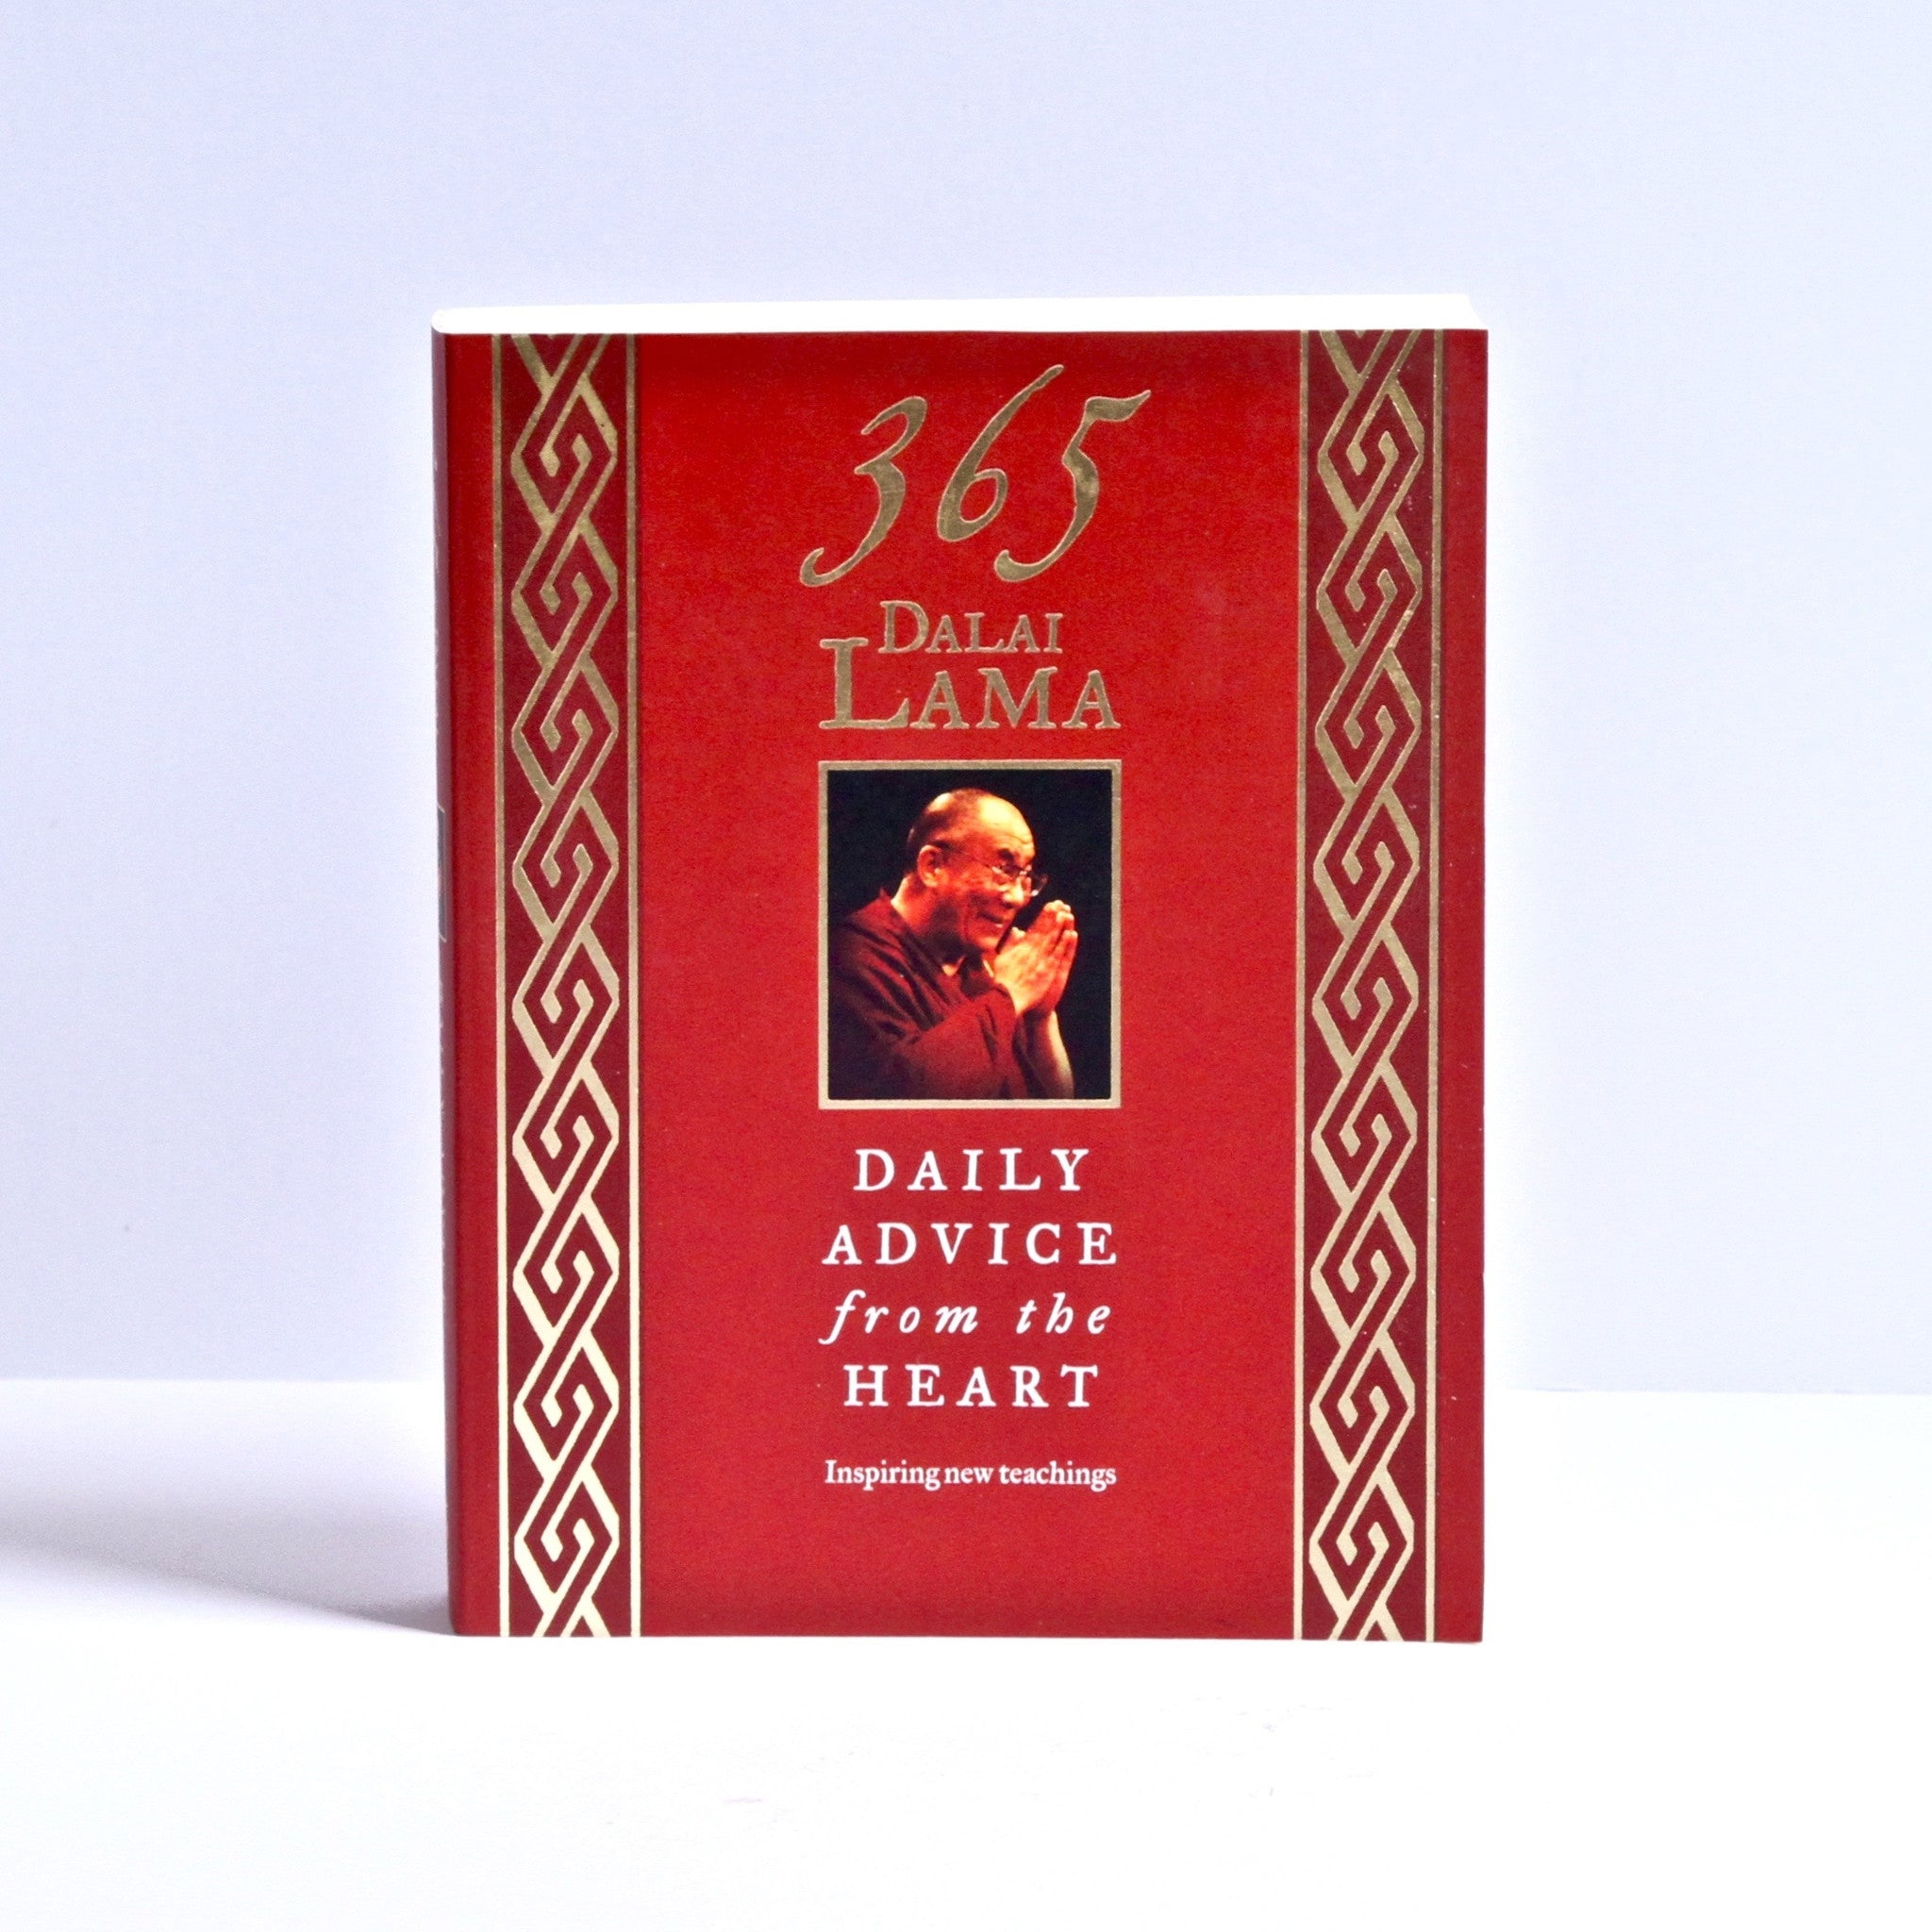 365 Dalai Lama - Daily Advice from the Heart by His Holiness The Dalai Lama